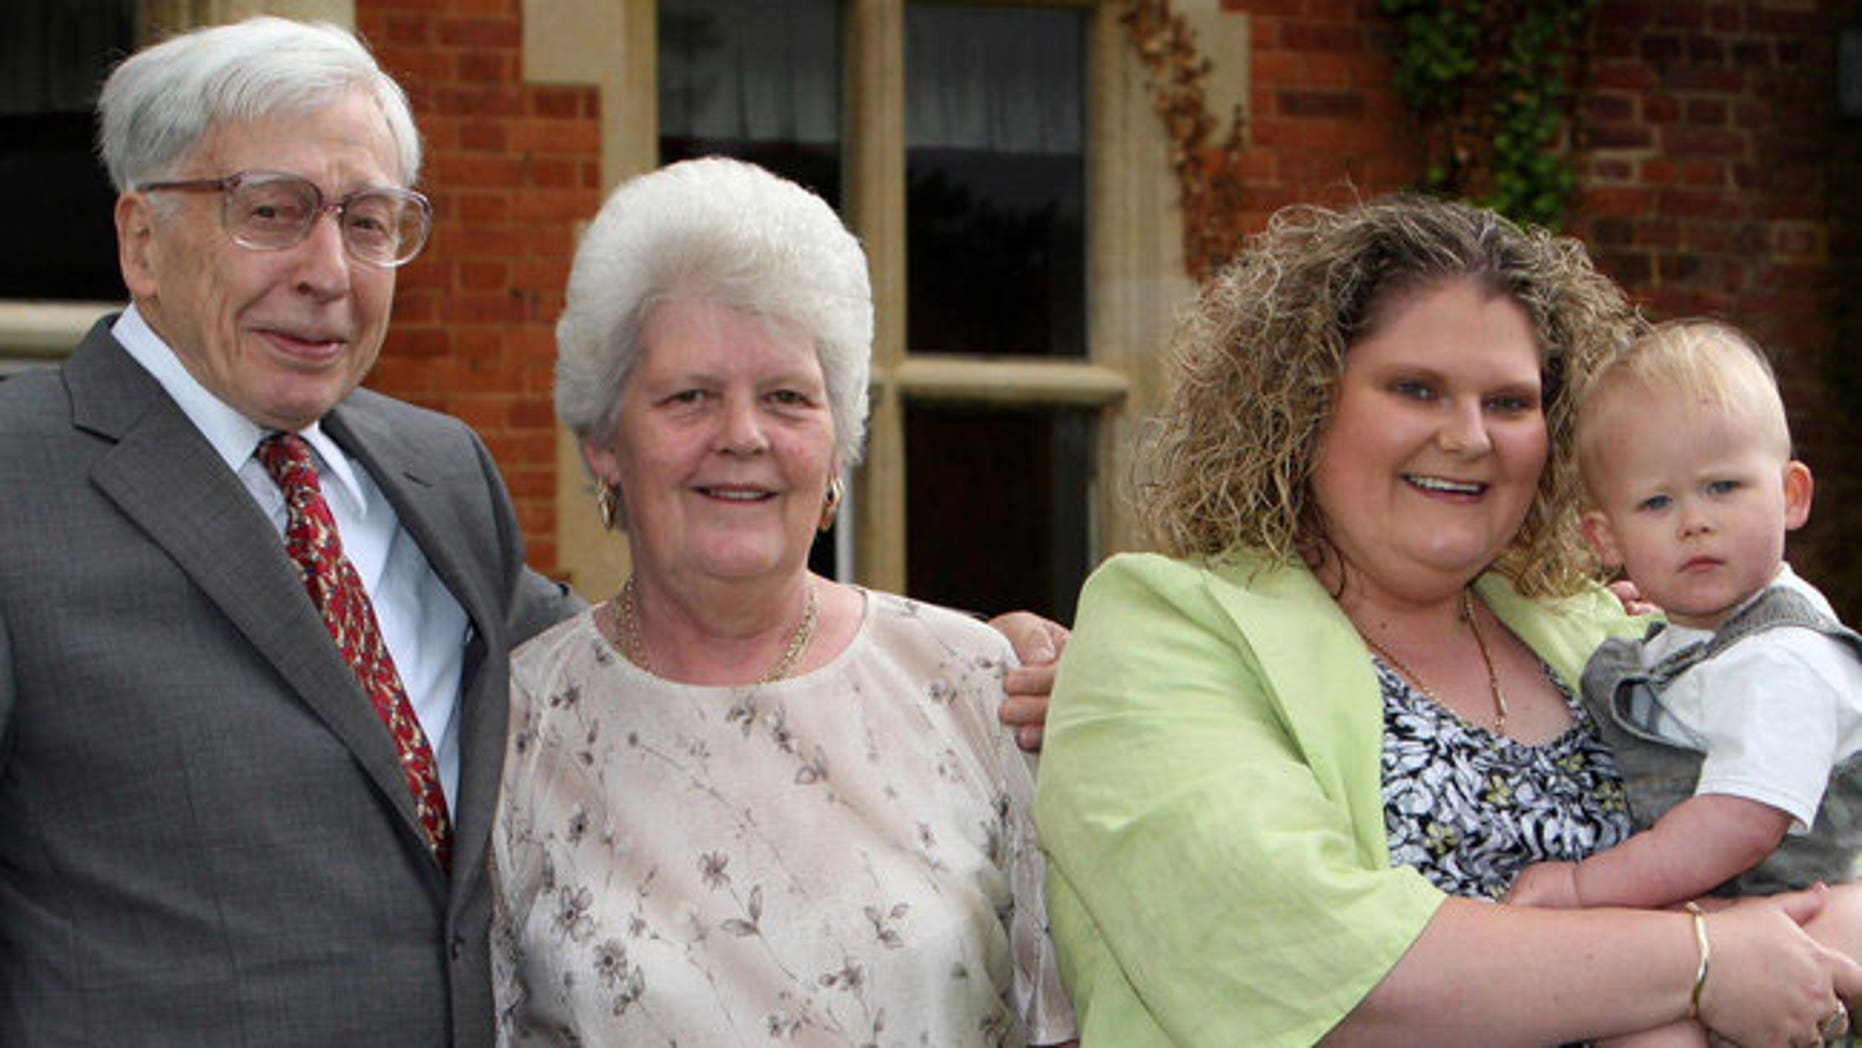 Robert G. Edwards with Lesley Brown, her daughter Louise Brown and her grandson in 2008.